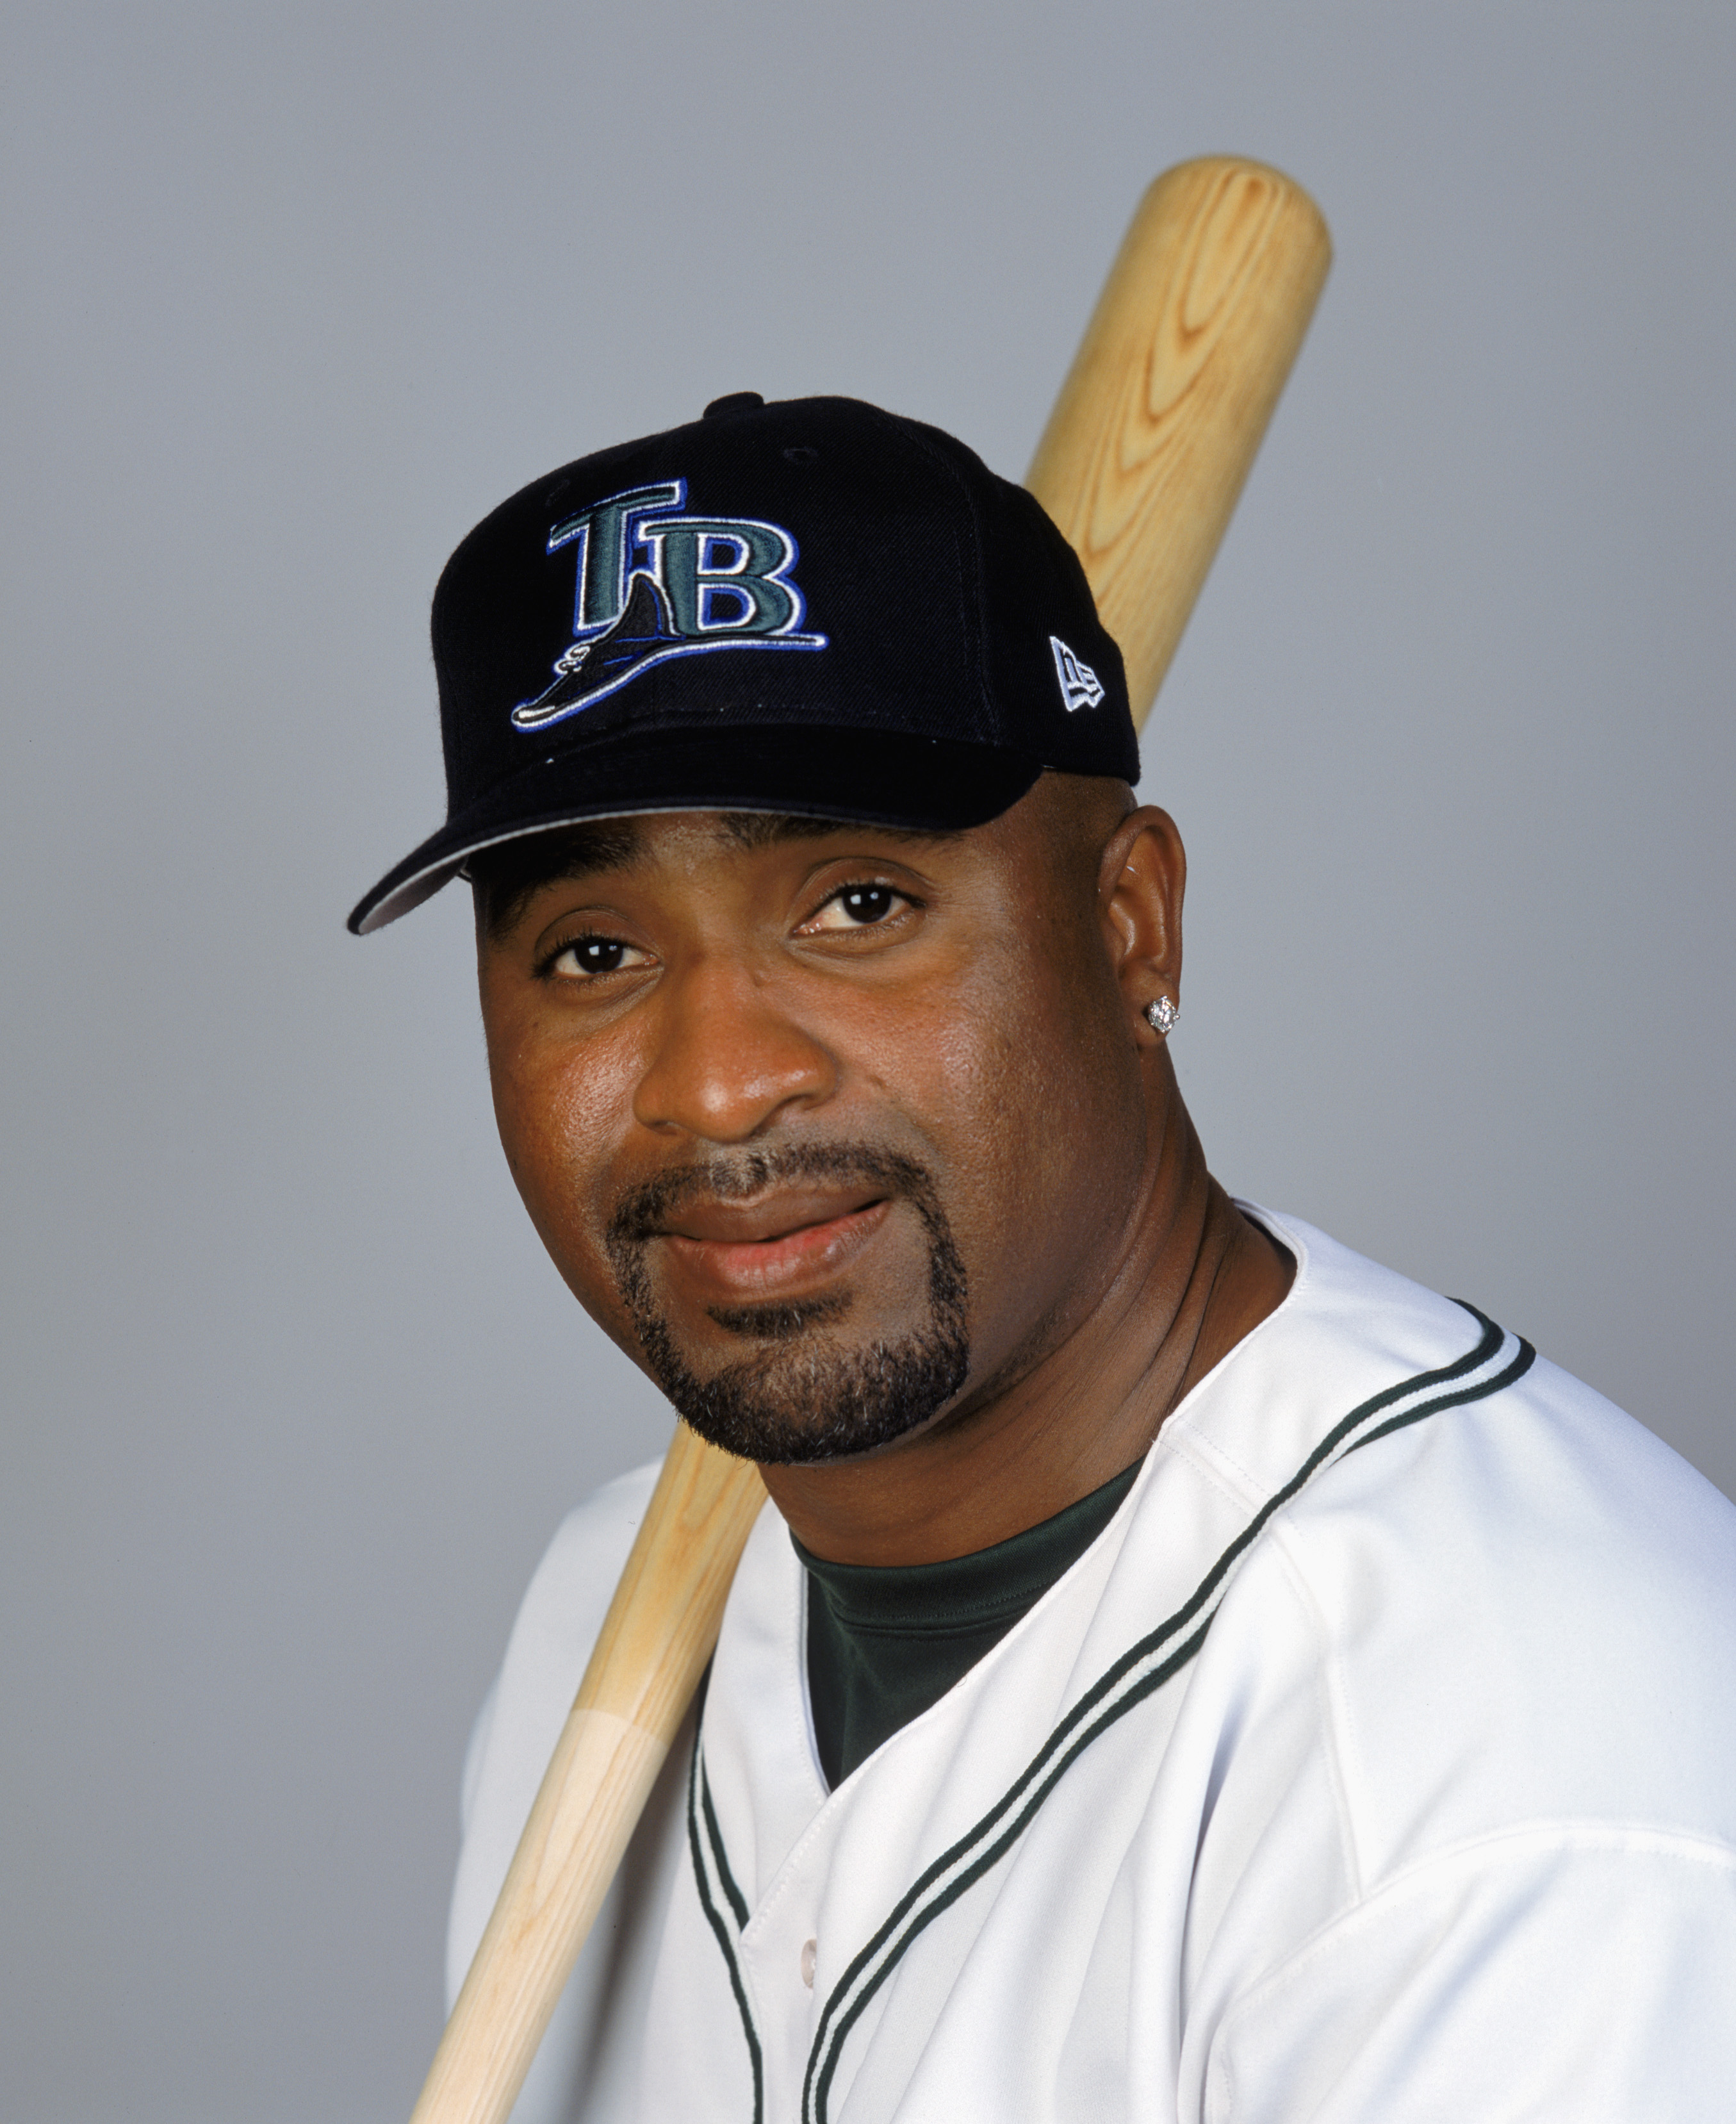 ST. PETERSBURG, FL- FEBRUARY 22:  Greg Vaughn #23 poses for a portrait during the Tampa Bay Devil Rays Media Day at Florida Power Park on February 22, 2003 in St. Petersburg, Florida. (Photo by: Ezra Shaw/Getty Images)